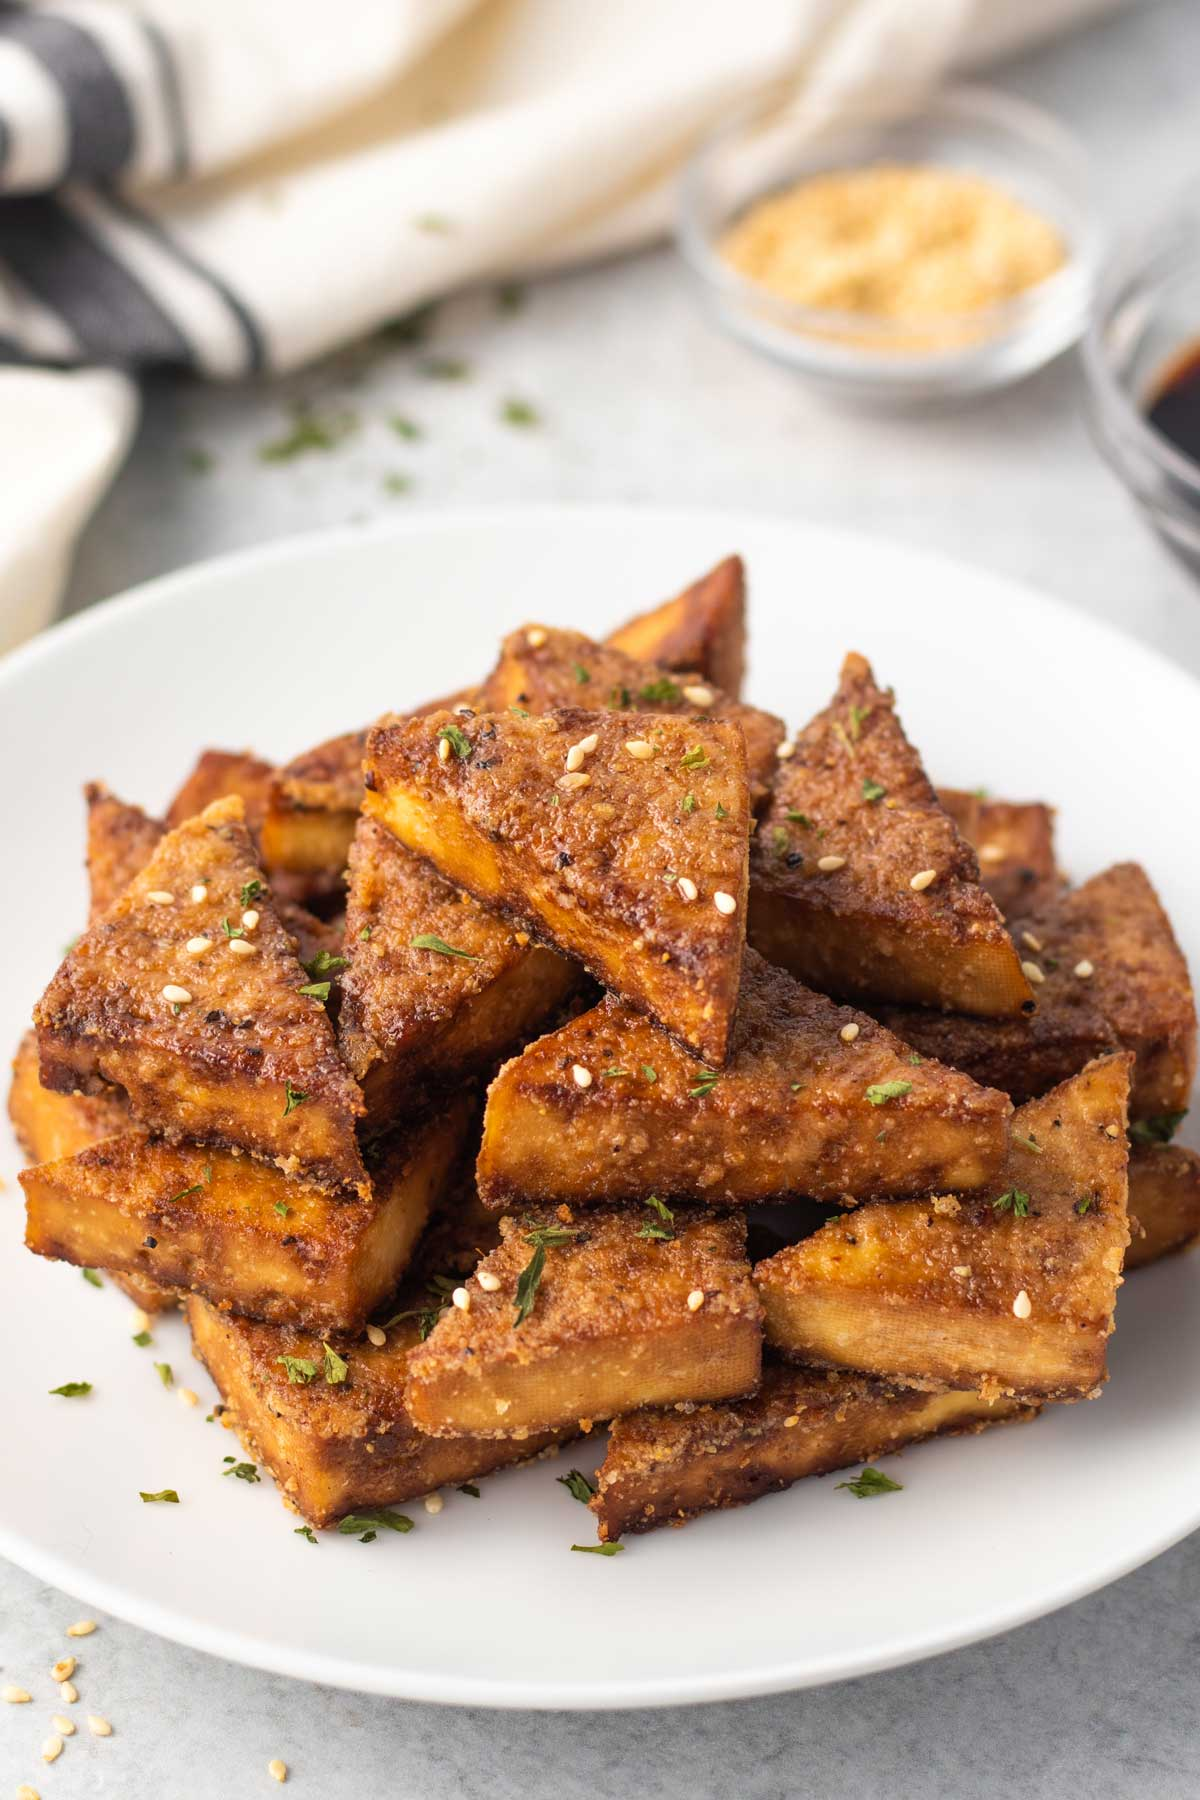 plate with triangles of crispy baked tofu with sesame seeds